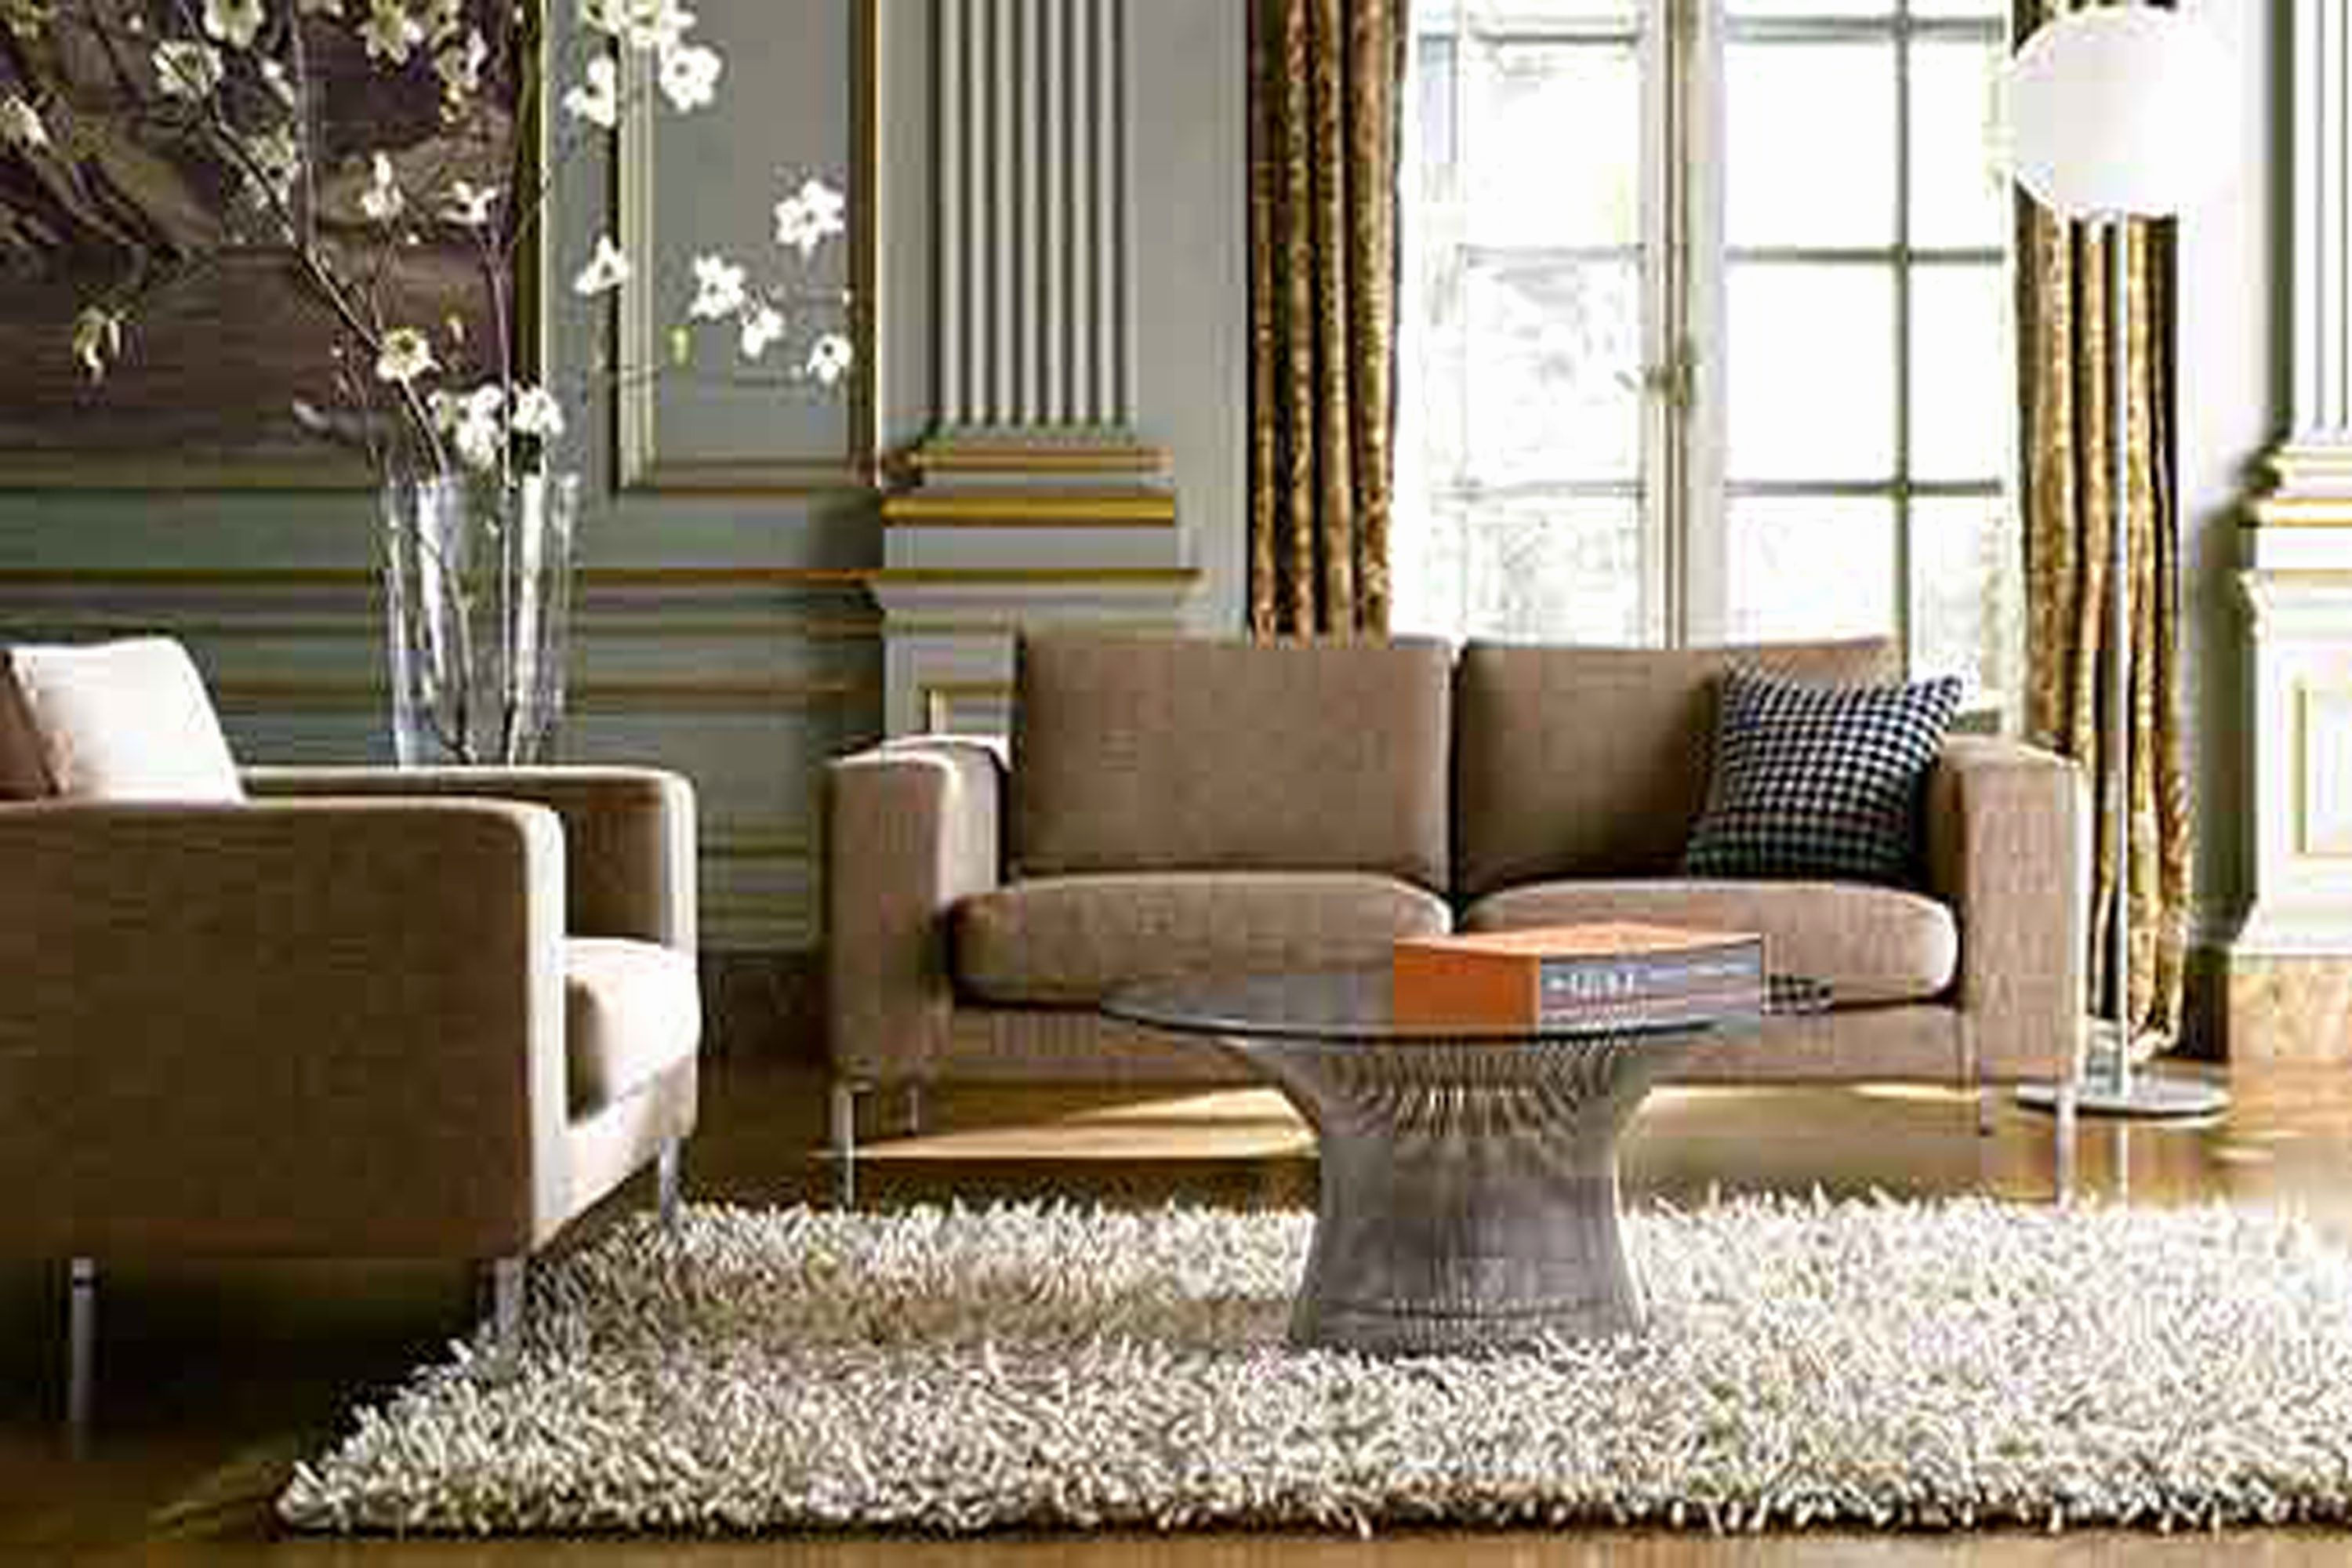 Luxury Brown sofa In Living Room Pics